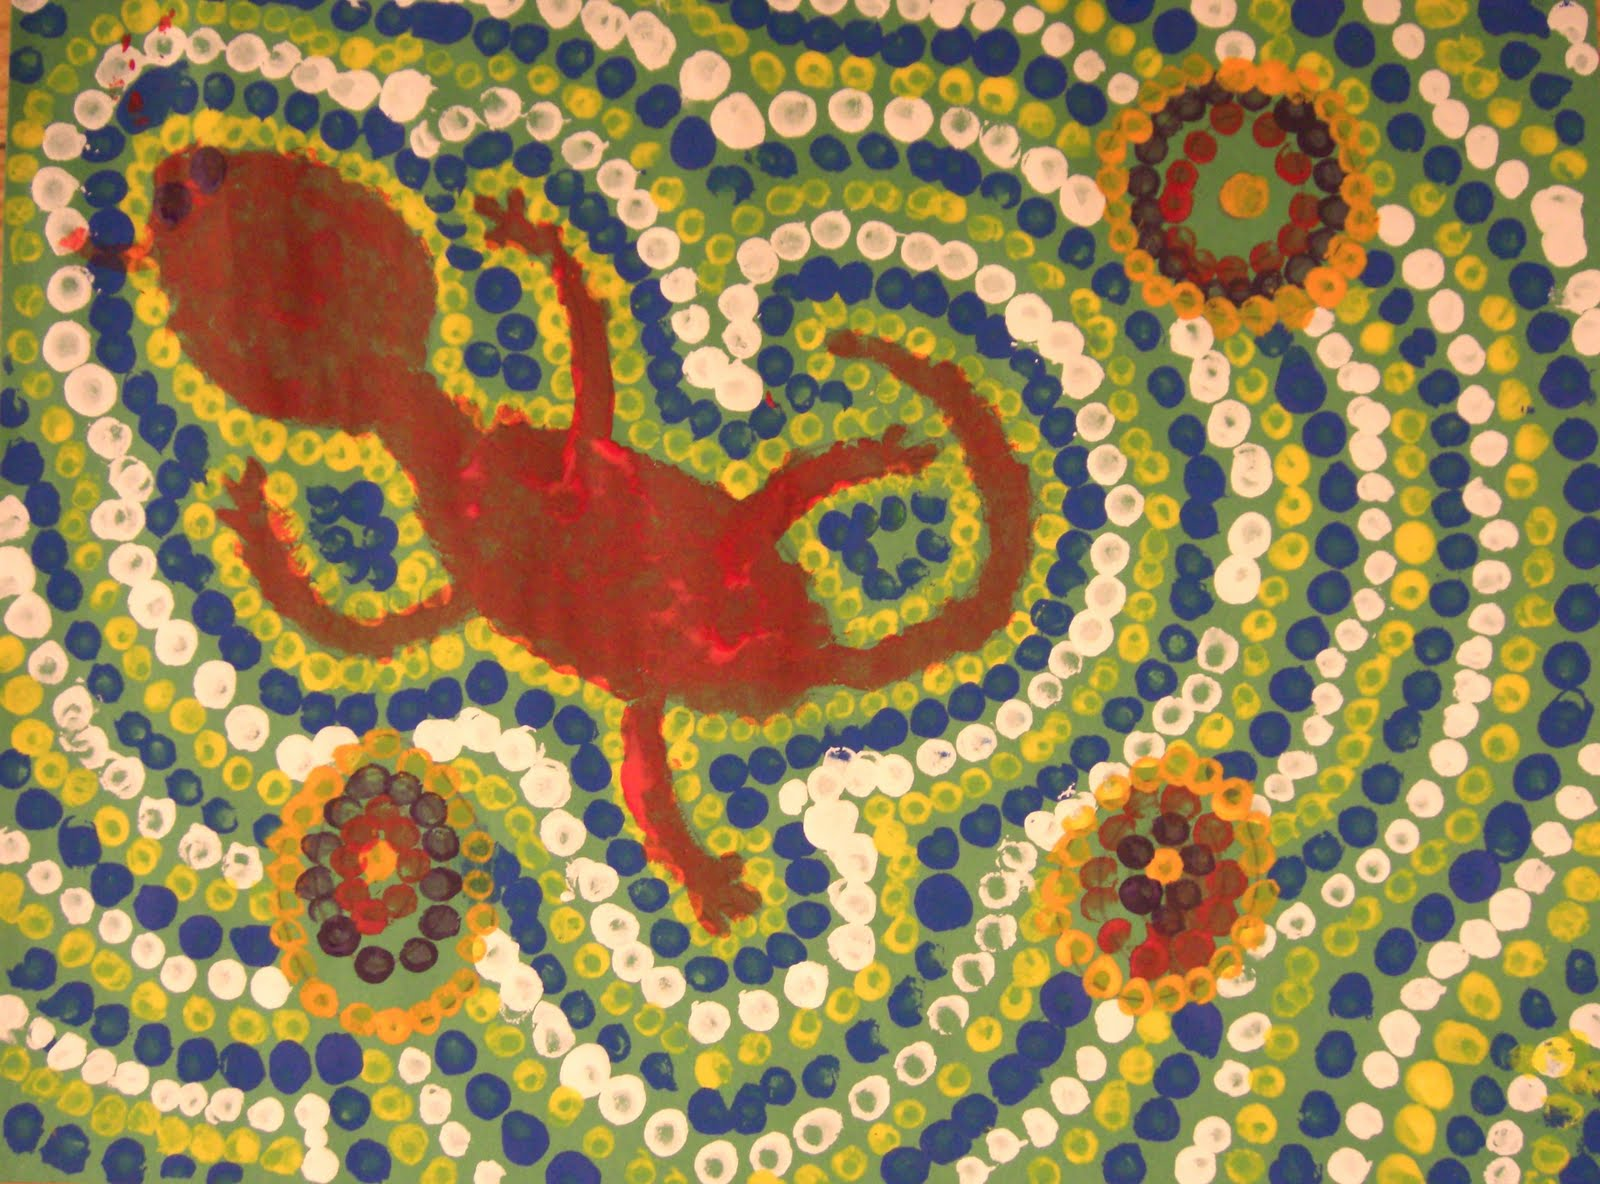 Aboriginal Dot Paintings Animals http://questartists.blogspot.com/2011/03/le-aboriginal-dot-painting.html